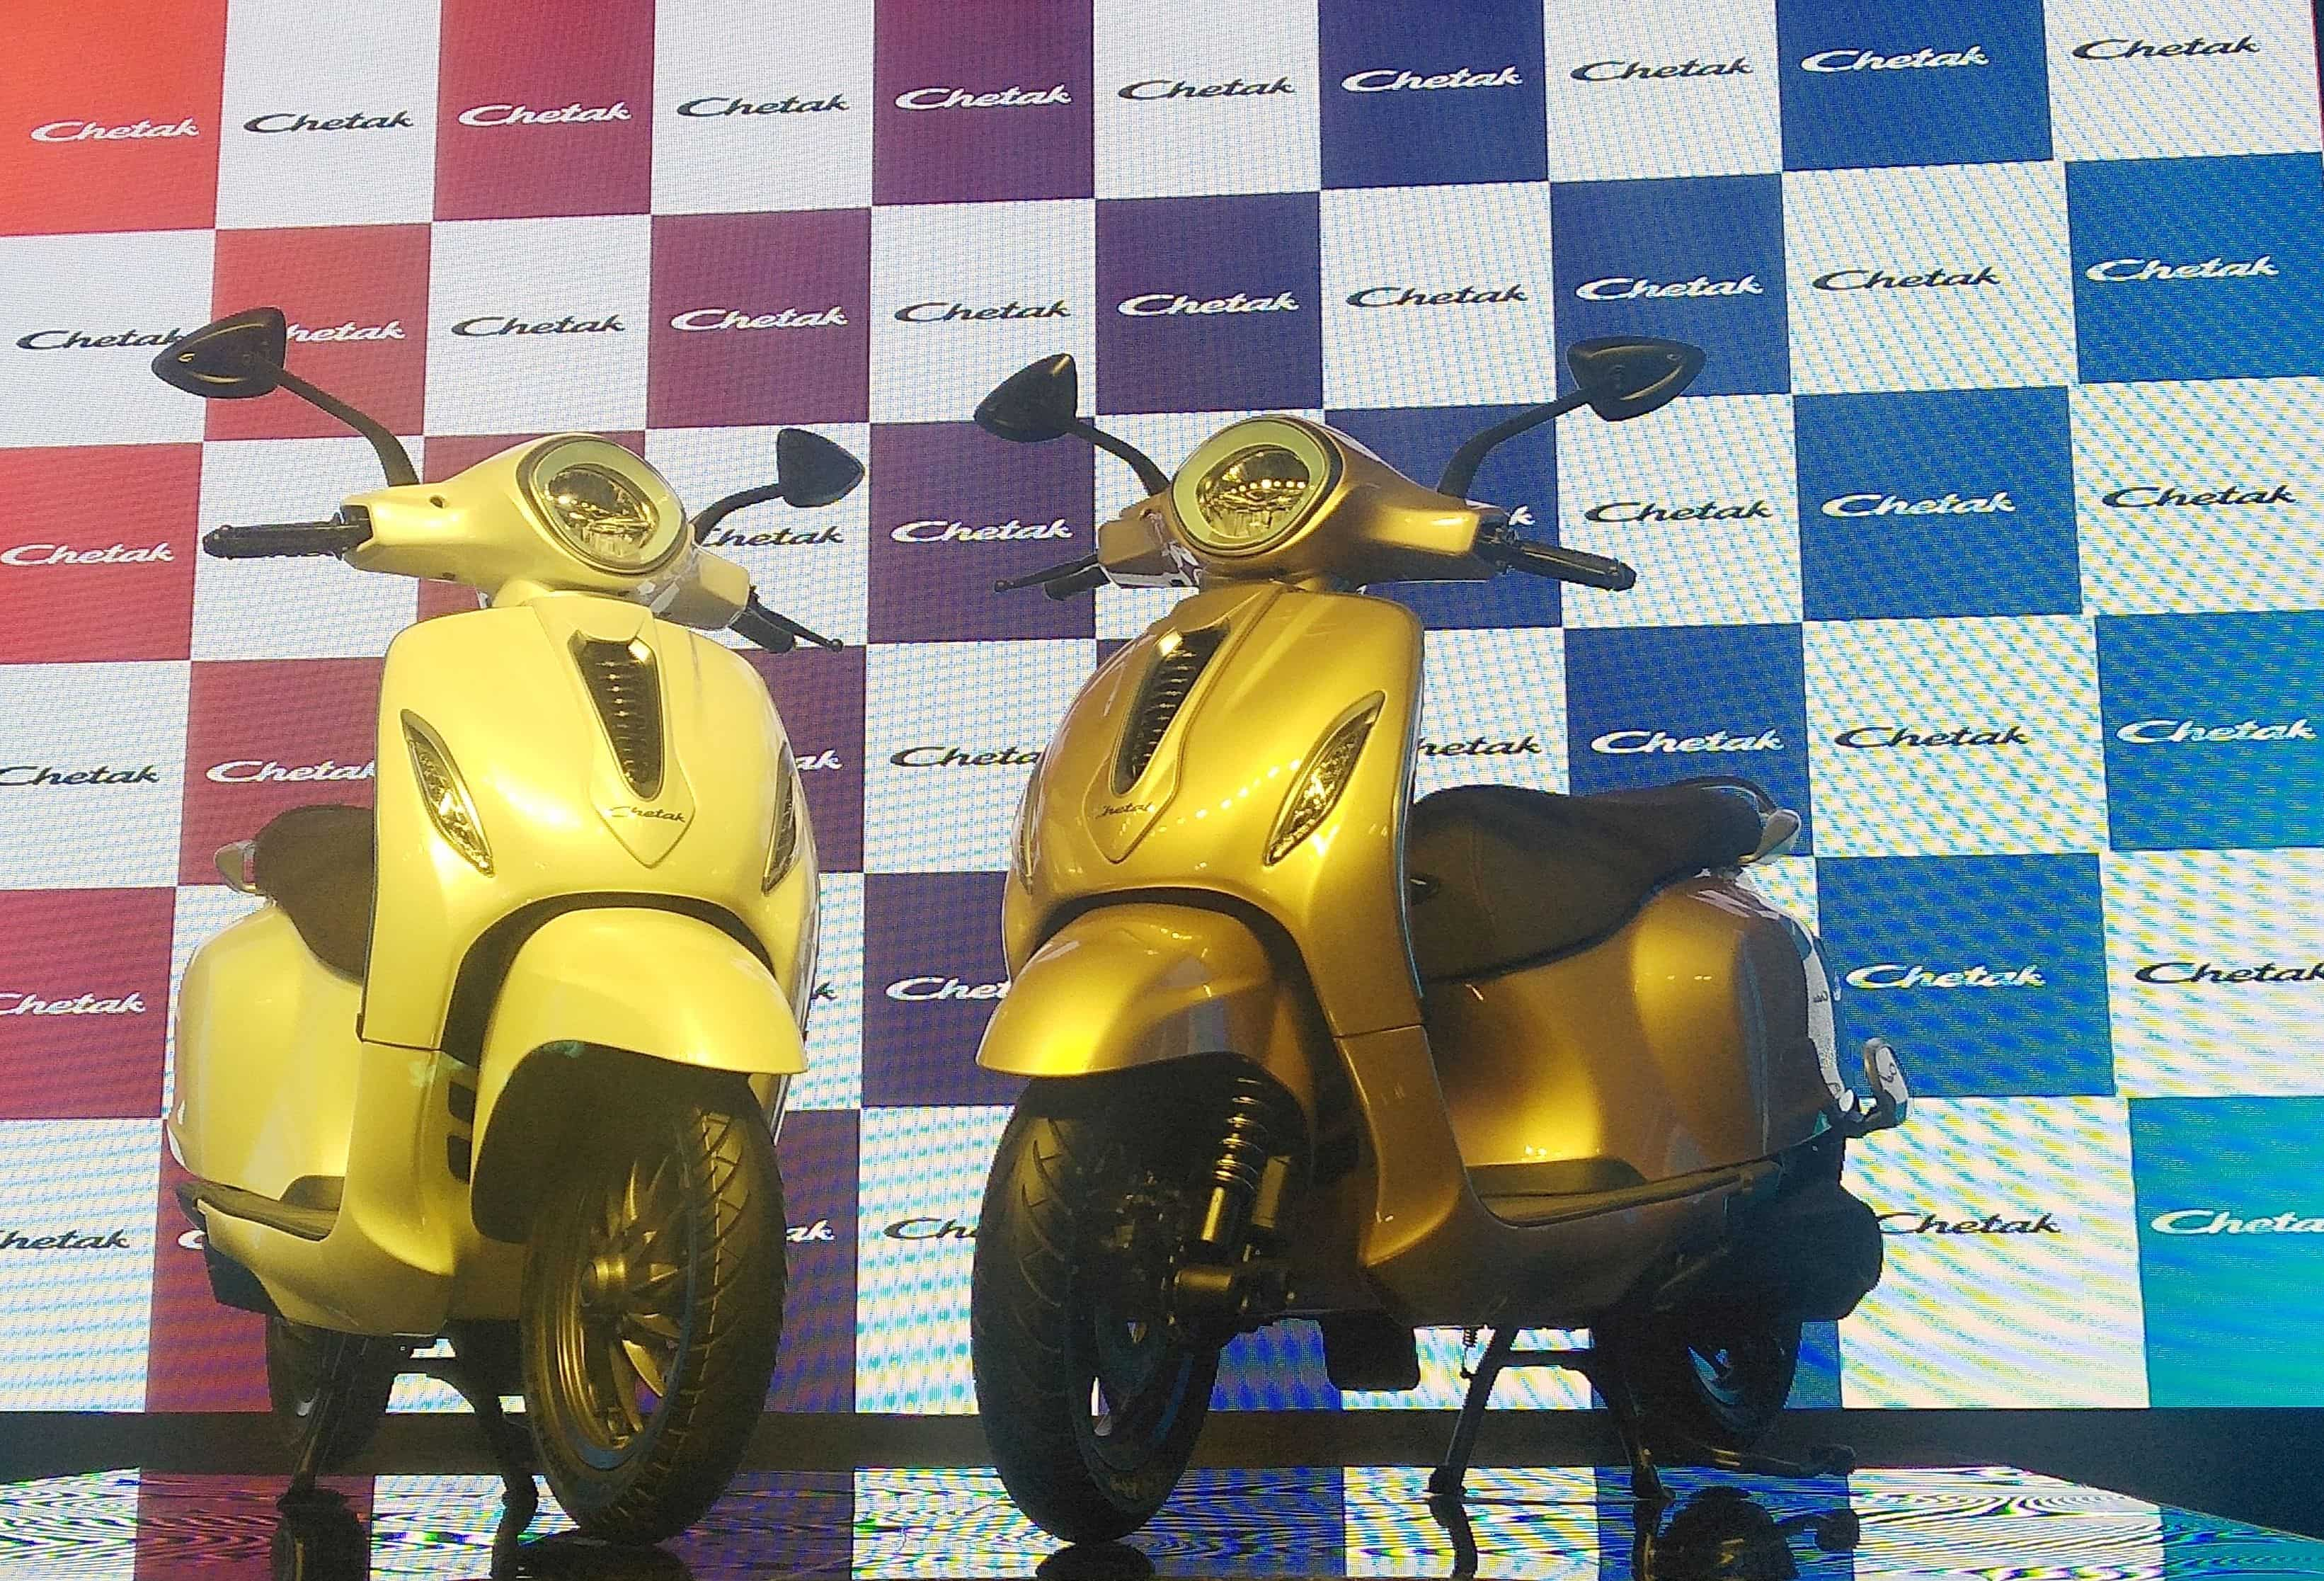 First look at the Bajaj Chetak electric scooter.